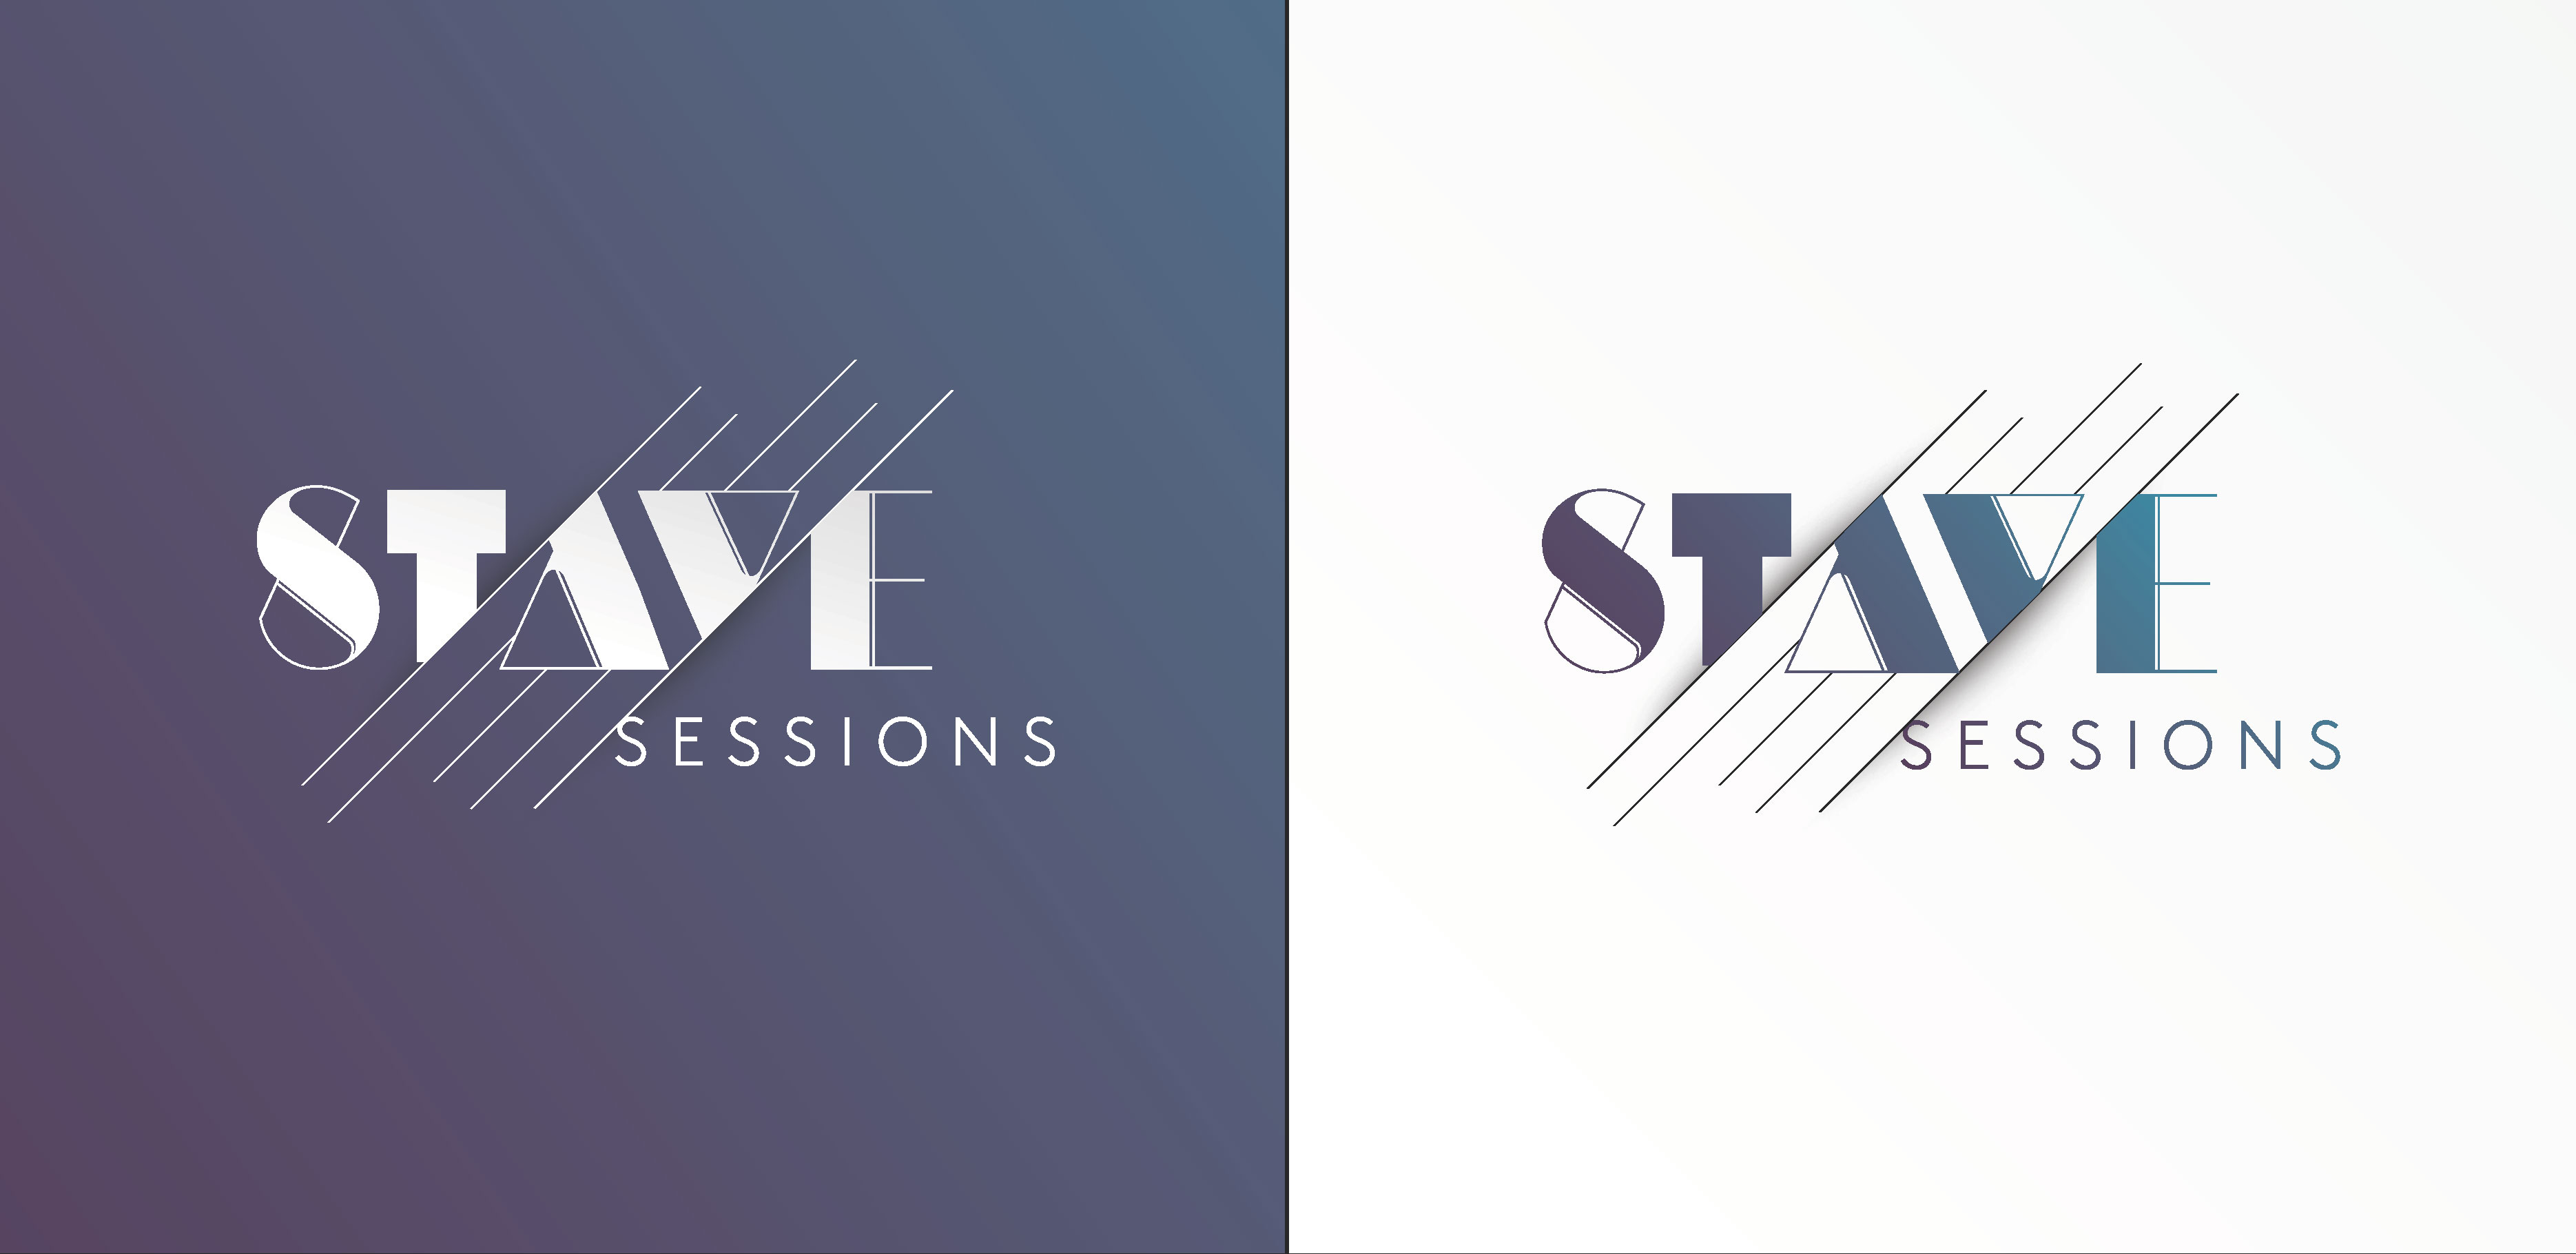 Stave Sessions Logo Lockup